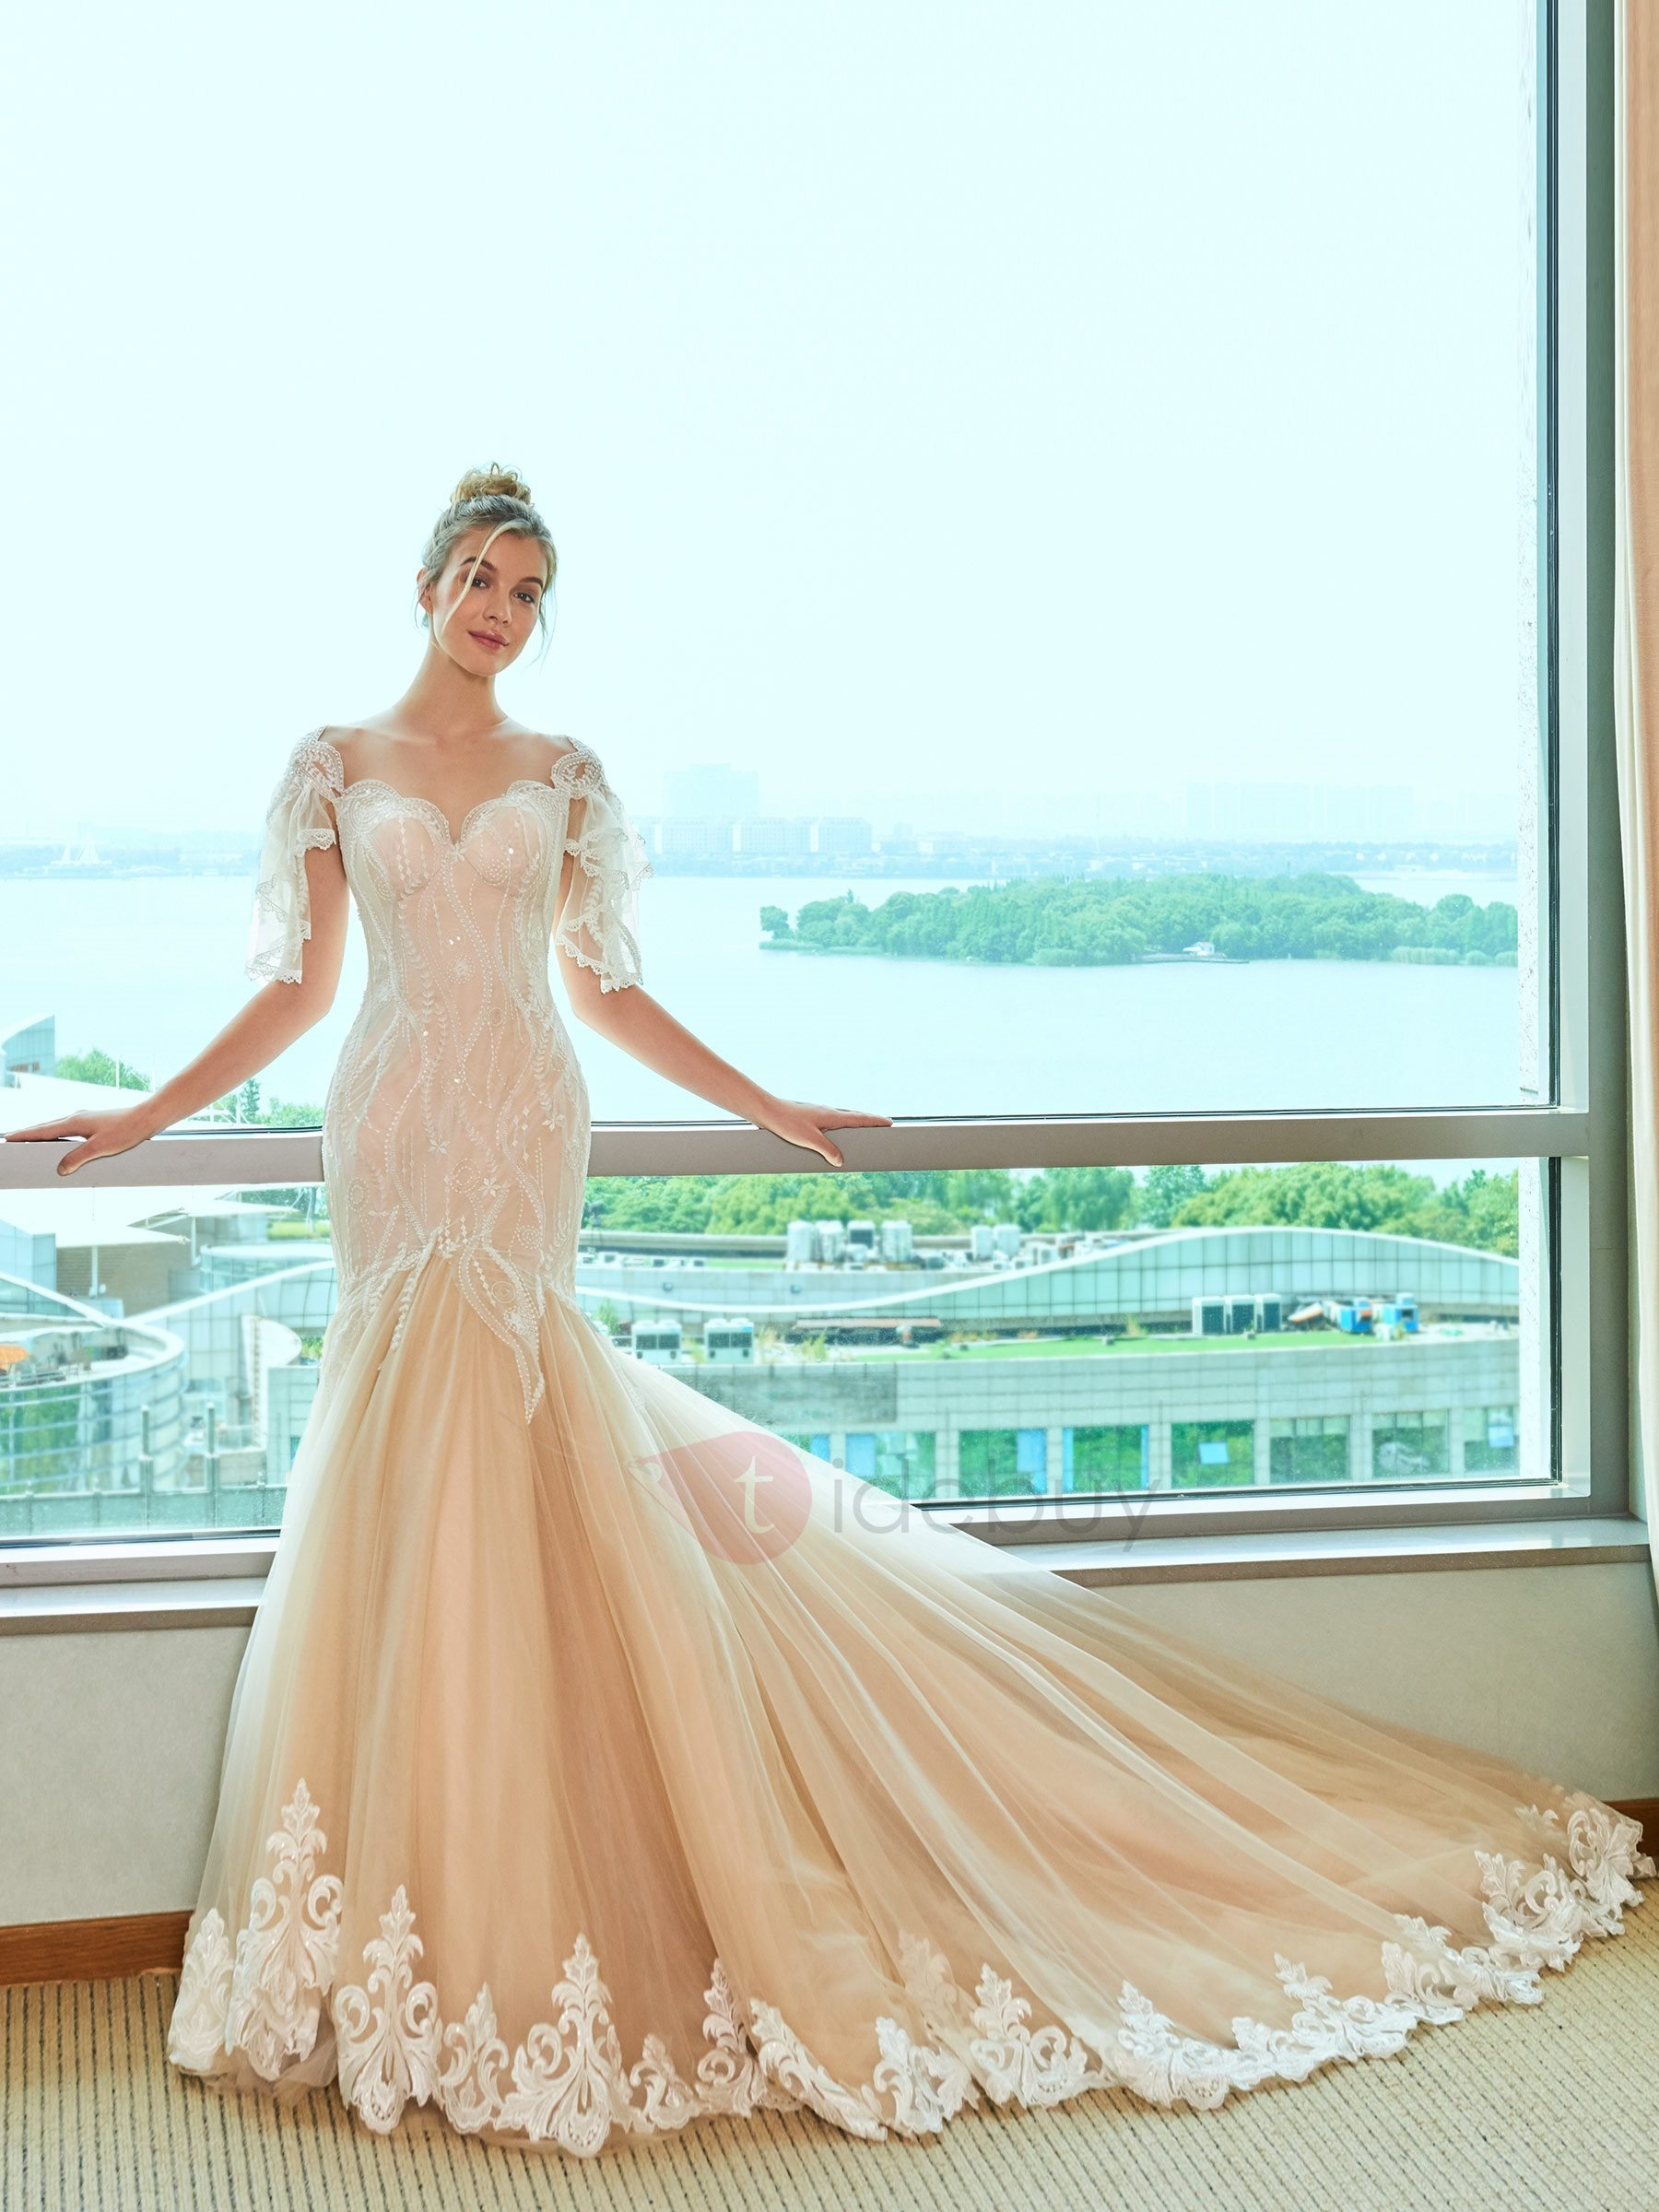 Illusion Neck Lace Mermaid Wedding Dress : Tidebuy.com